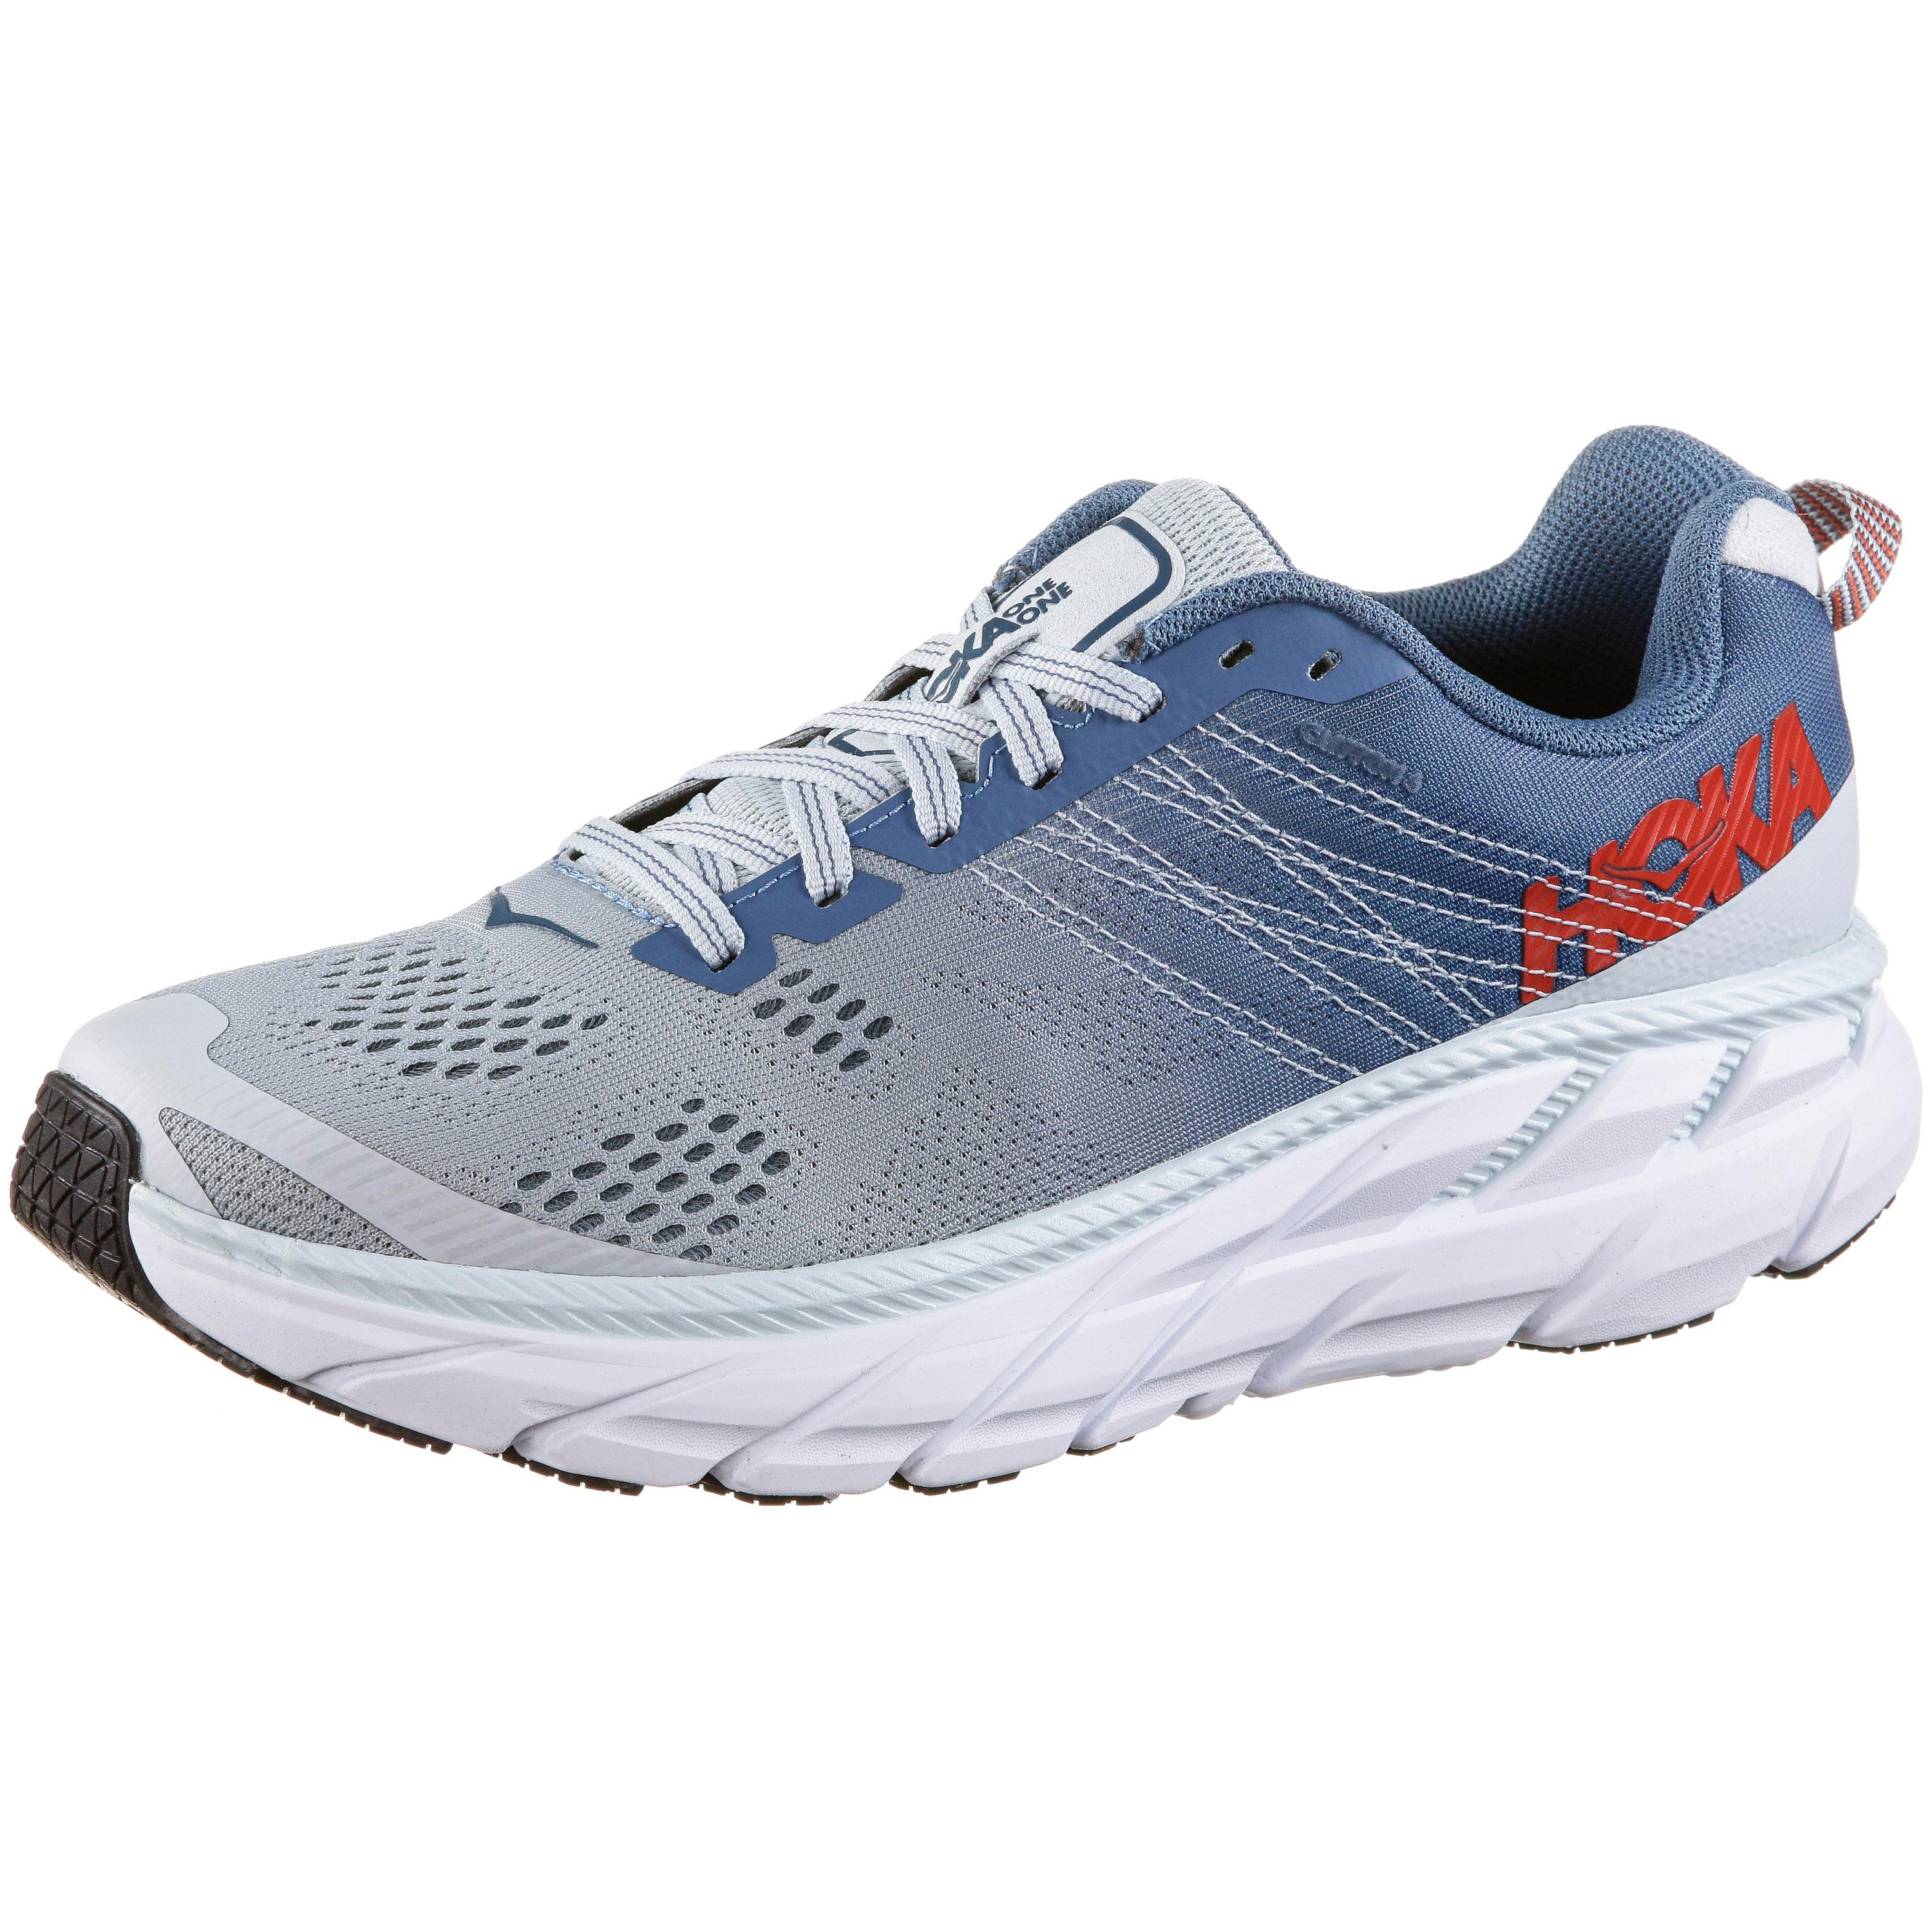 Hoka One One CLIFTON 6 Laufschuhe Damen